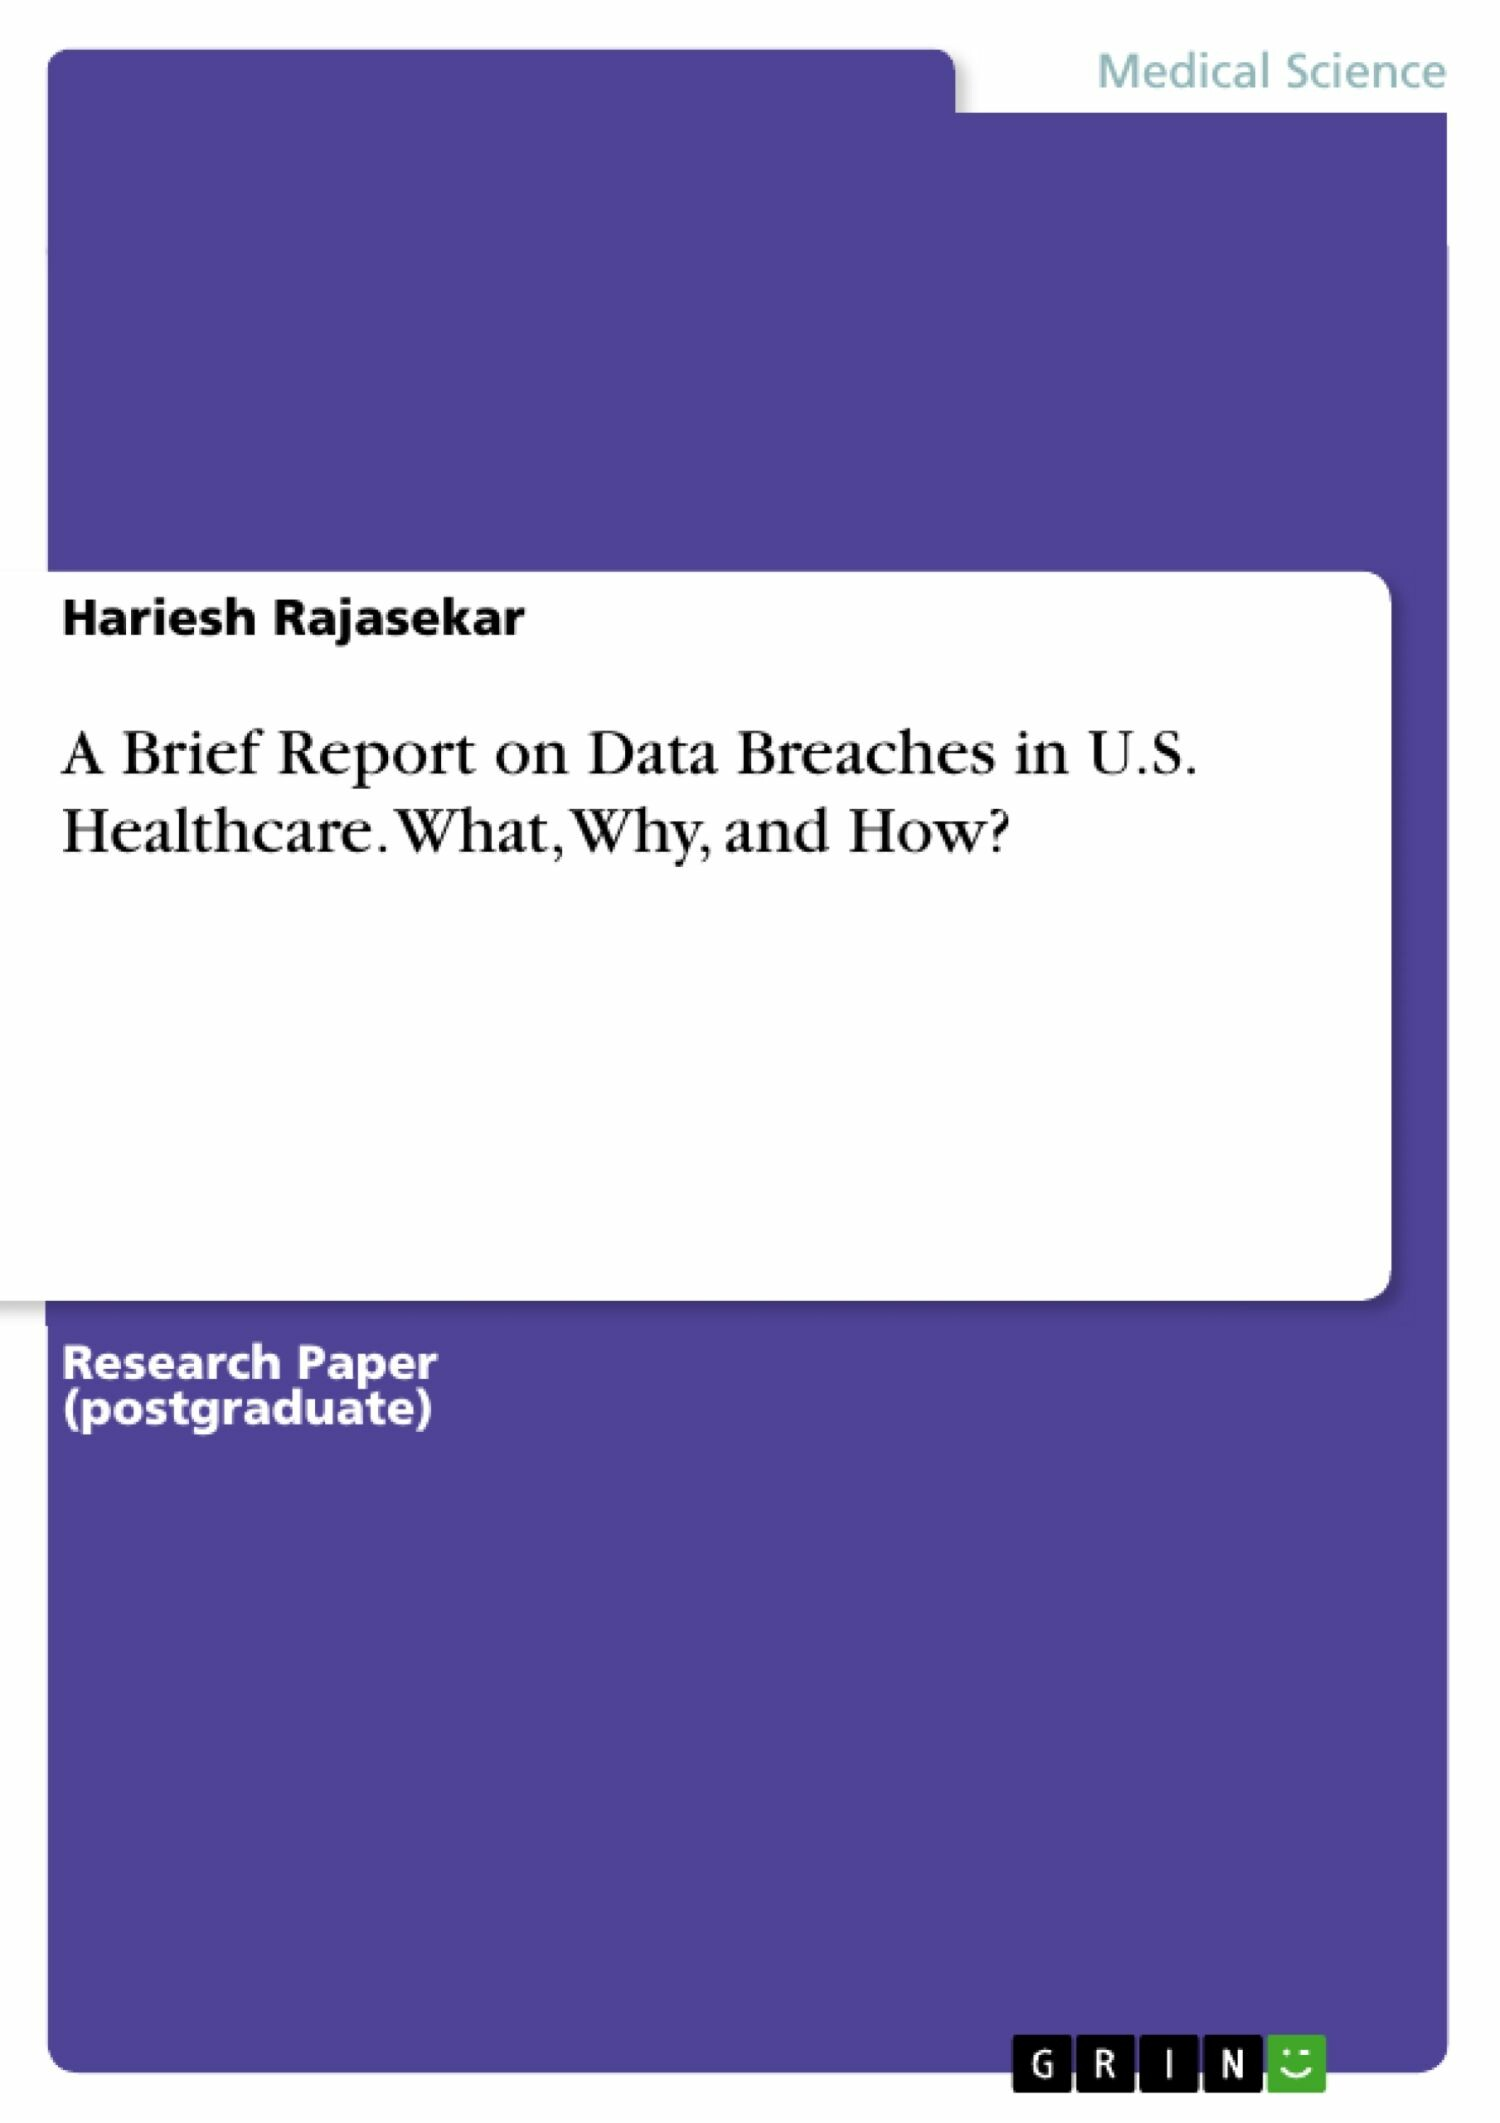 A Brief Report on Data Breaches in U.S. Healthcare. What, Why, and How?